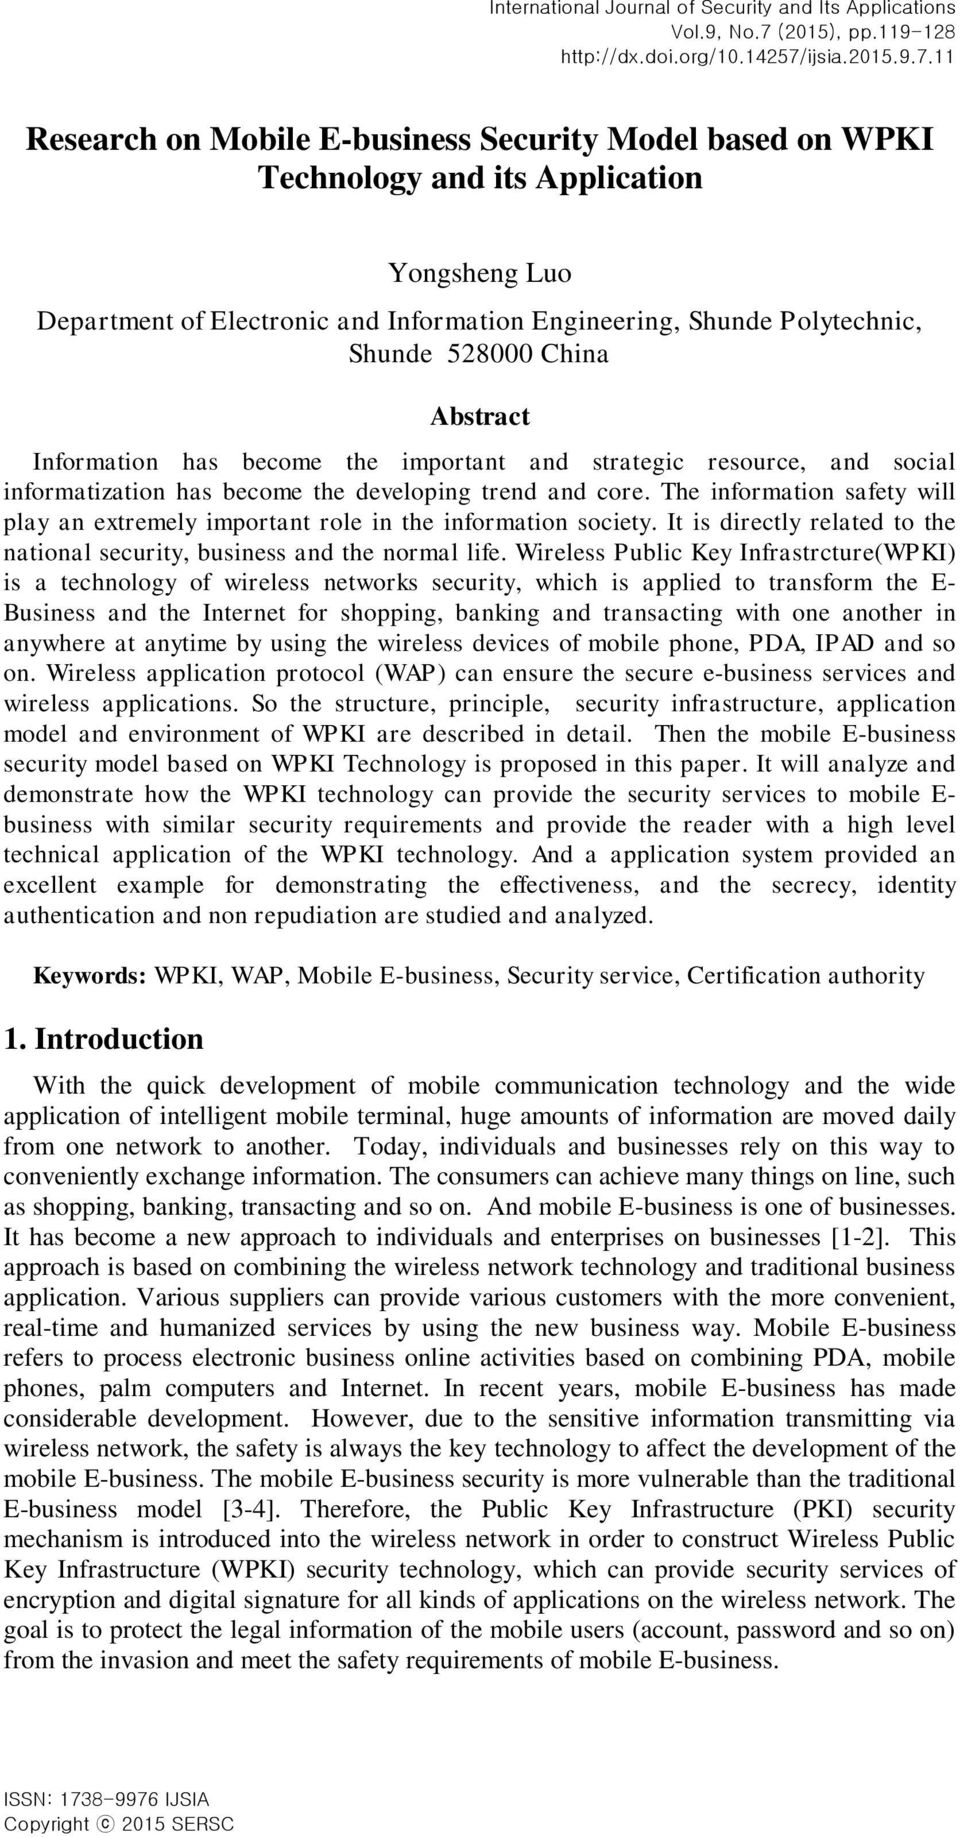 11 Research on Mobile E-business Security Model based on WPKI Technology and its Application Yongsheng Luo Department of Electronic and Information Engineering, Shunde Polytechnic, Shunde 528000